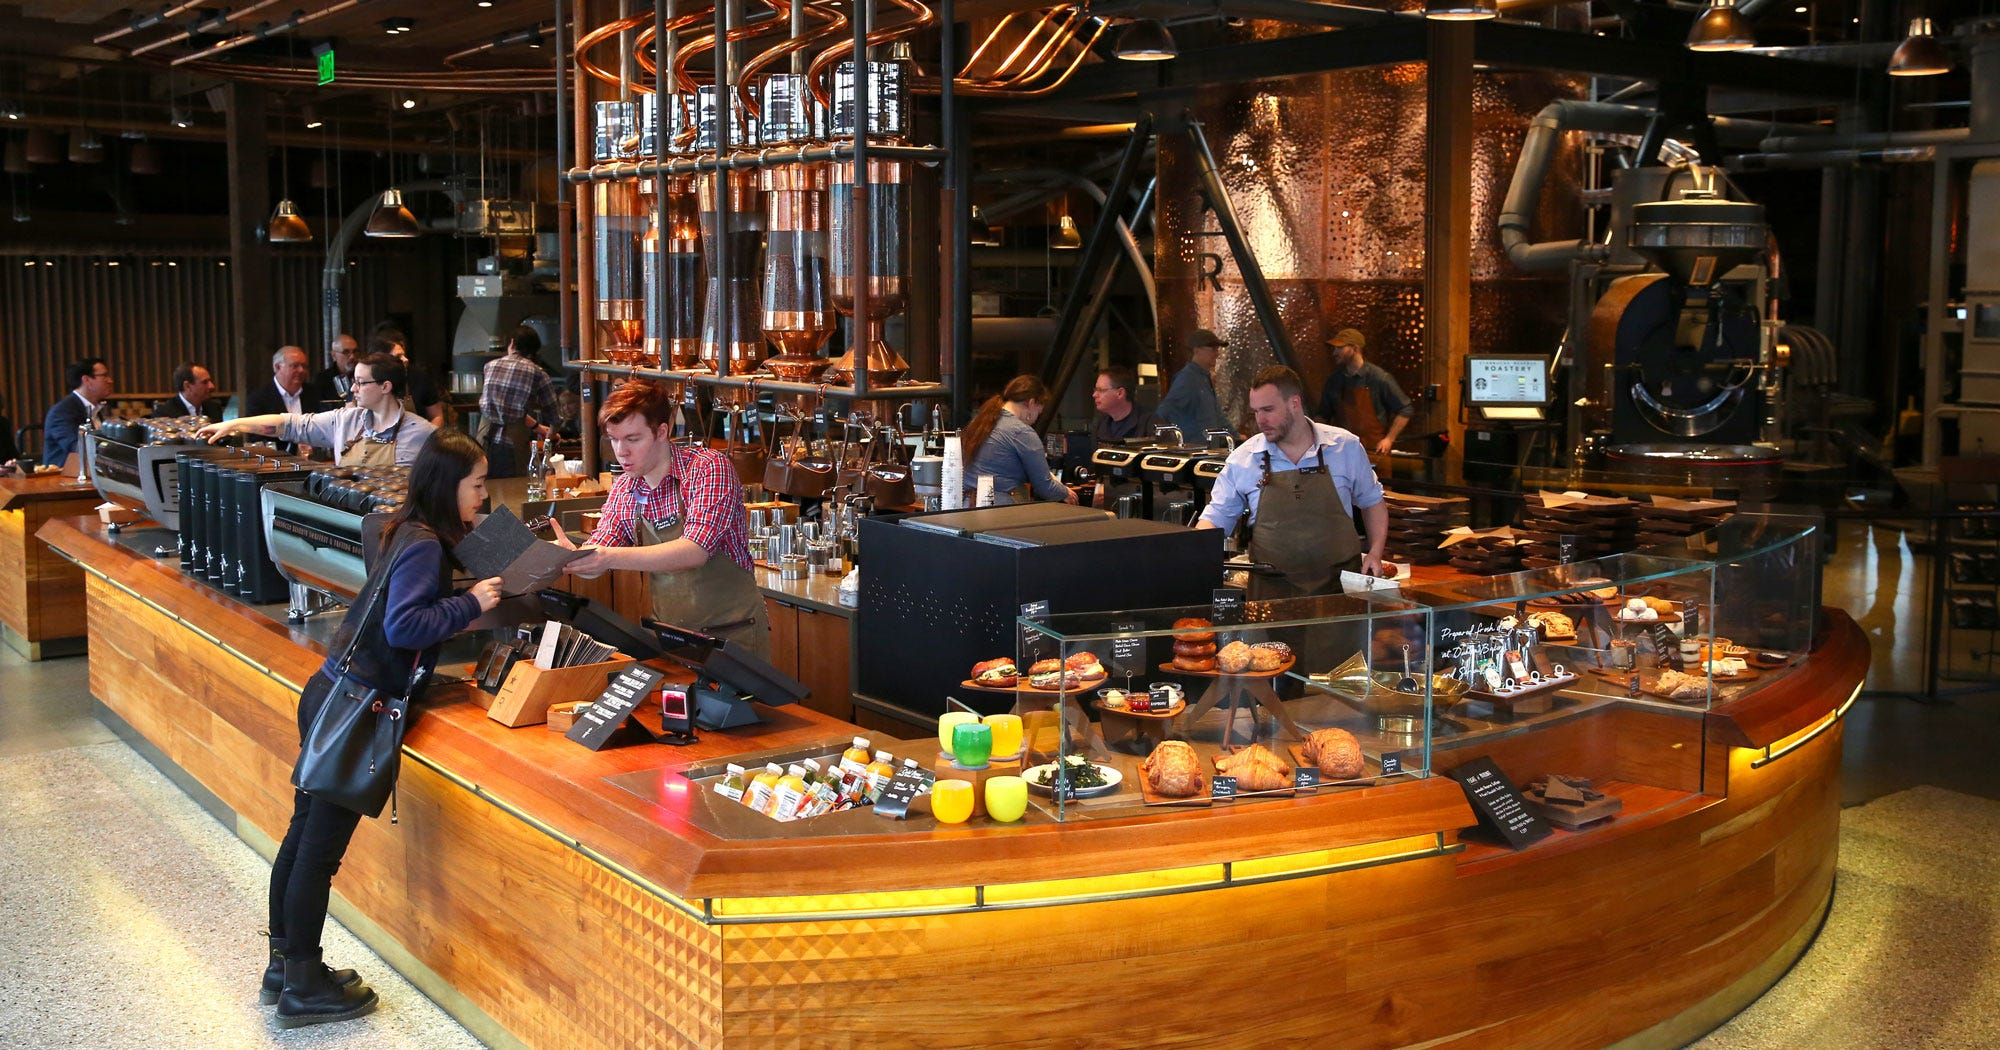 Starbucks Will Open A 20,000-Square-Foot Location In NYC